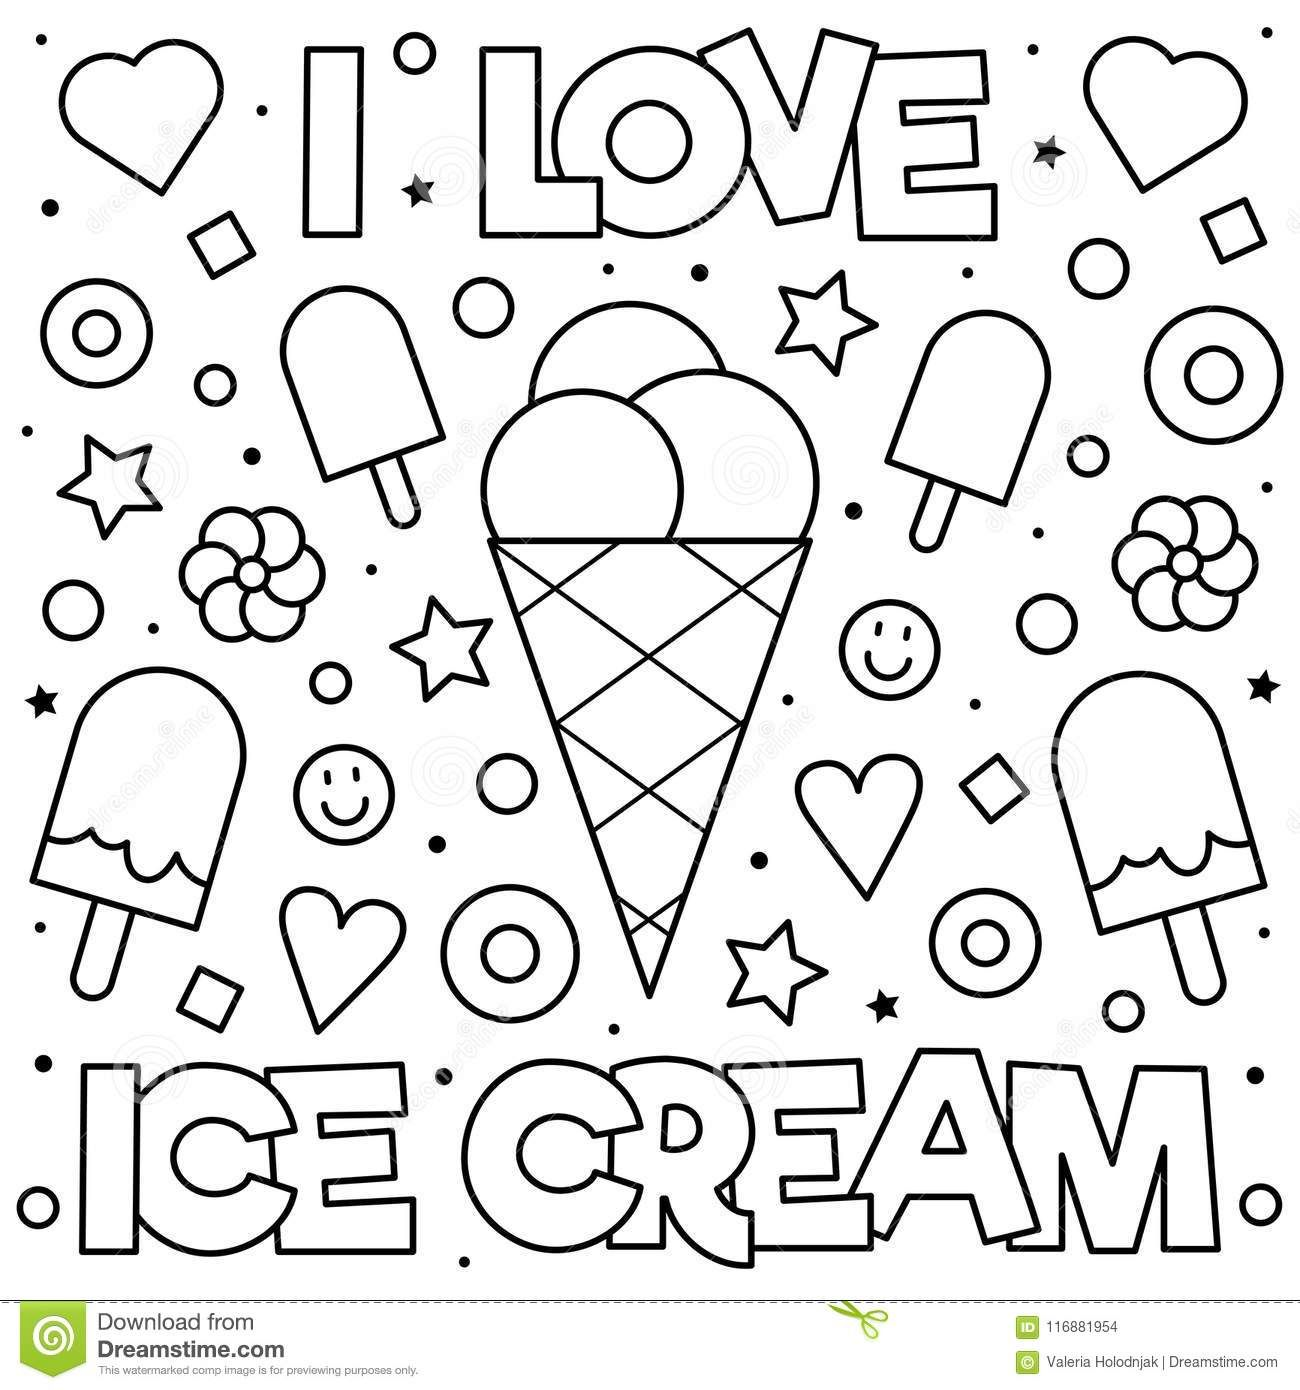 i love summer coloring pages image result for ice cream drawing i love ice cream free pages coloring summer love i